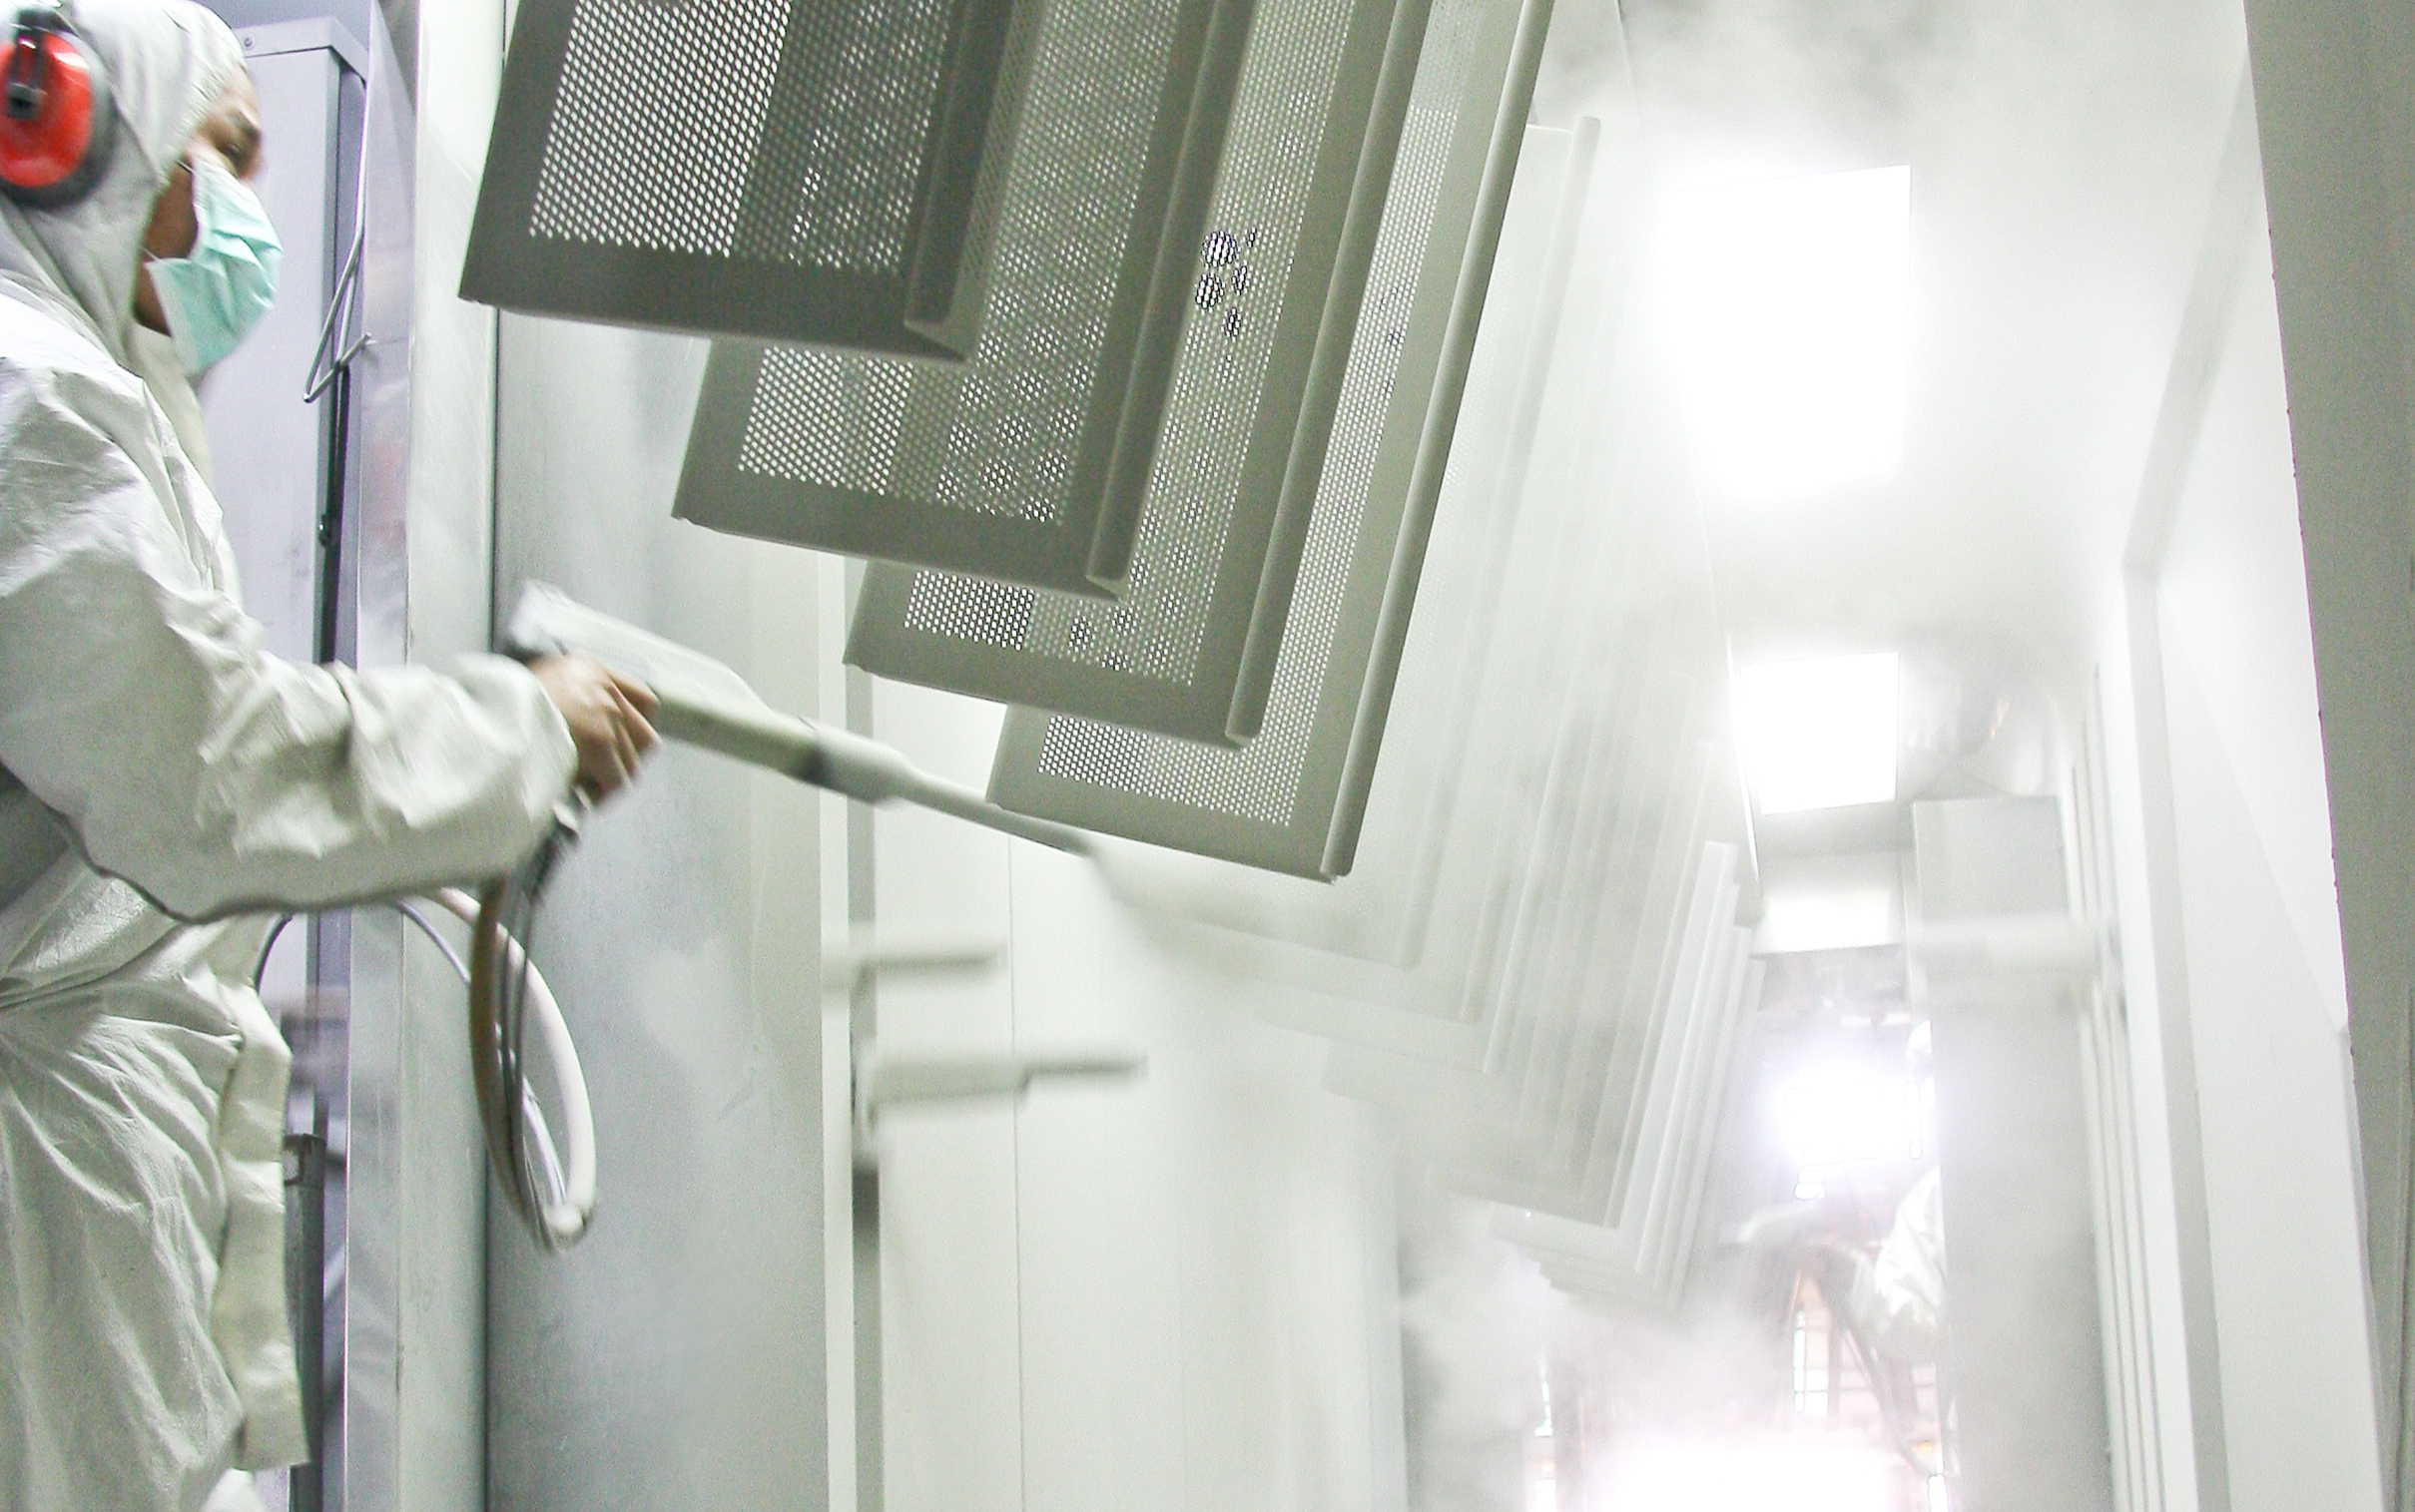 Powder Coating - Our powder coating facility is strictly monitored for a smooth and even coating. All metal are cleaned and treated twice in a sonic wave tub before powder coats are applied. Furthermore, we control the processing of powder residue to avoid pollution.